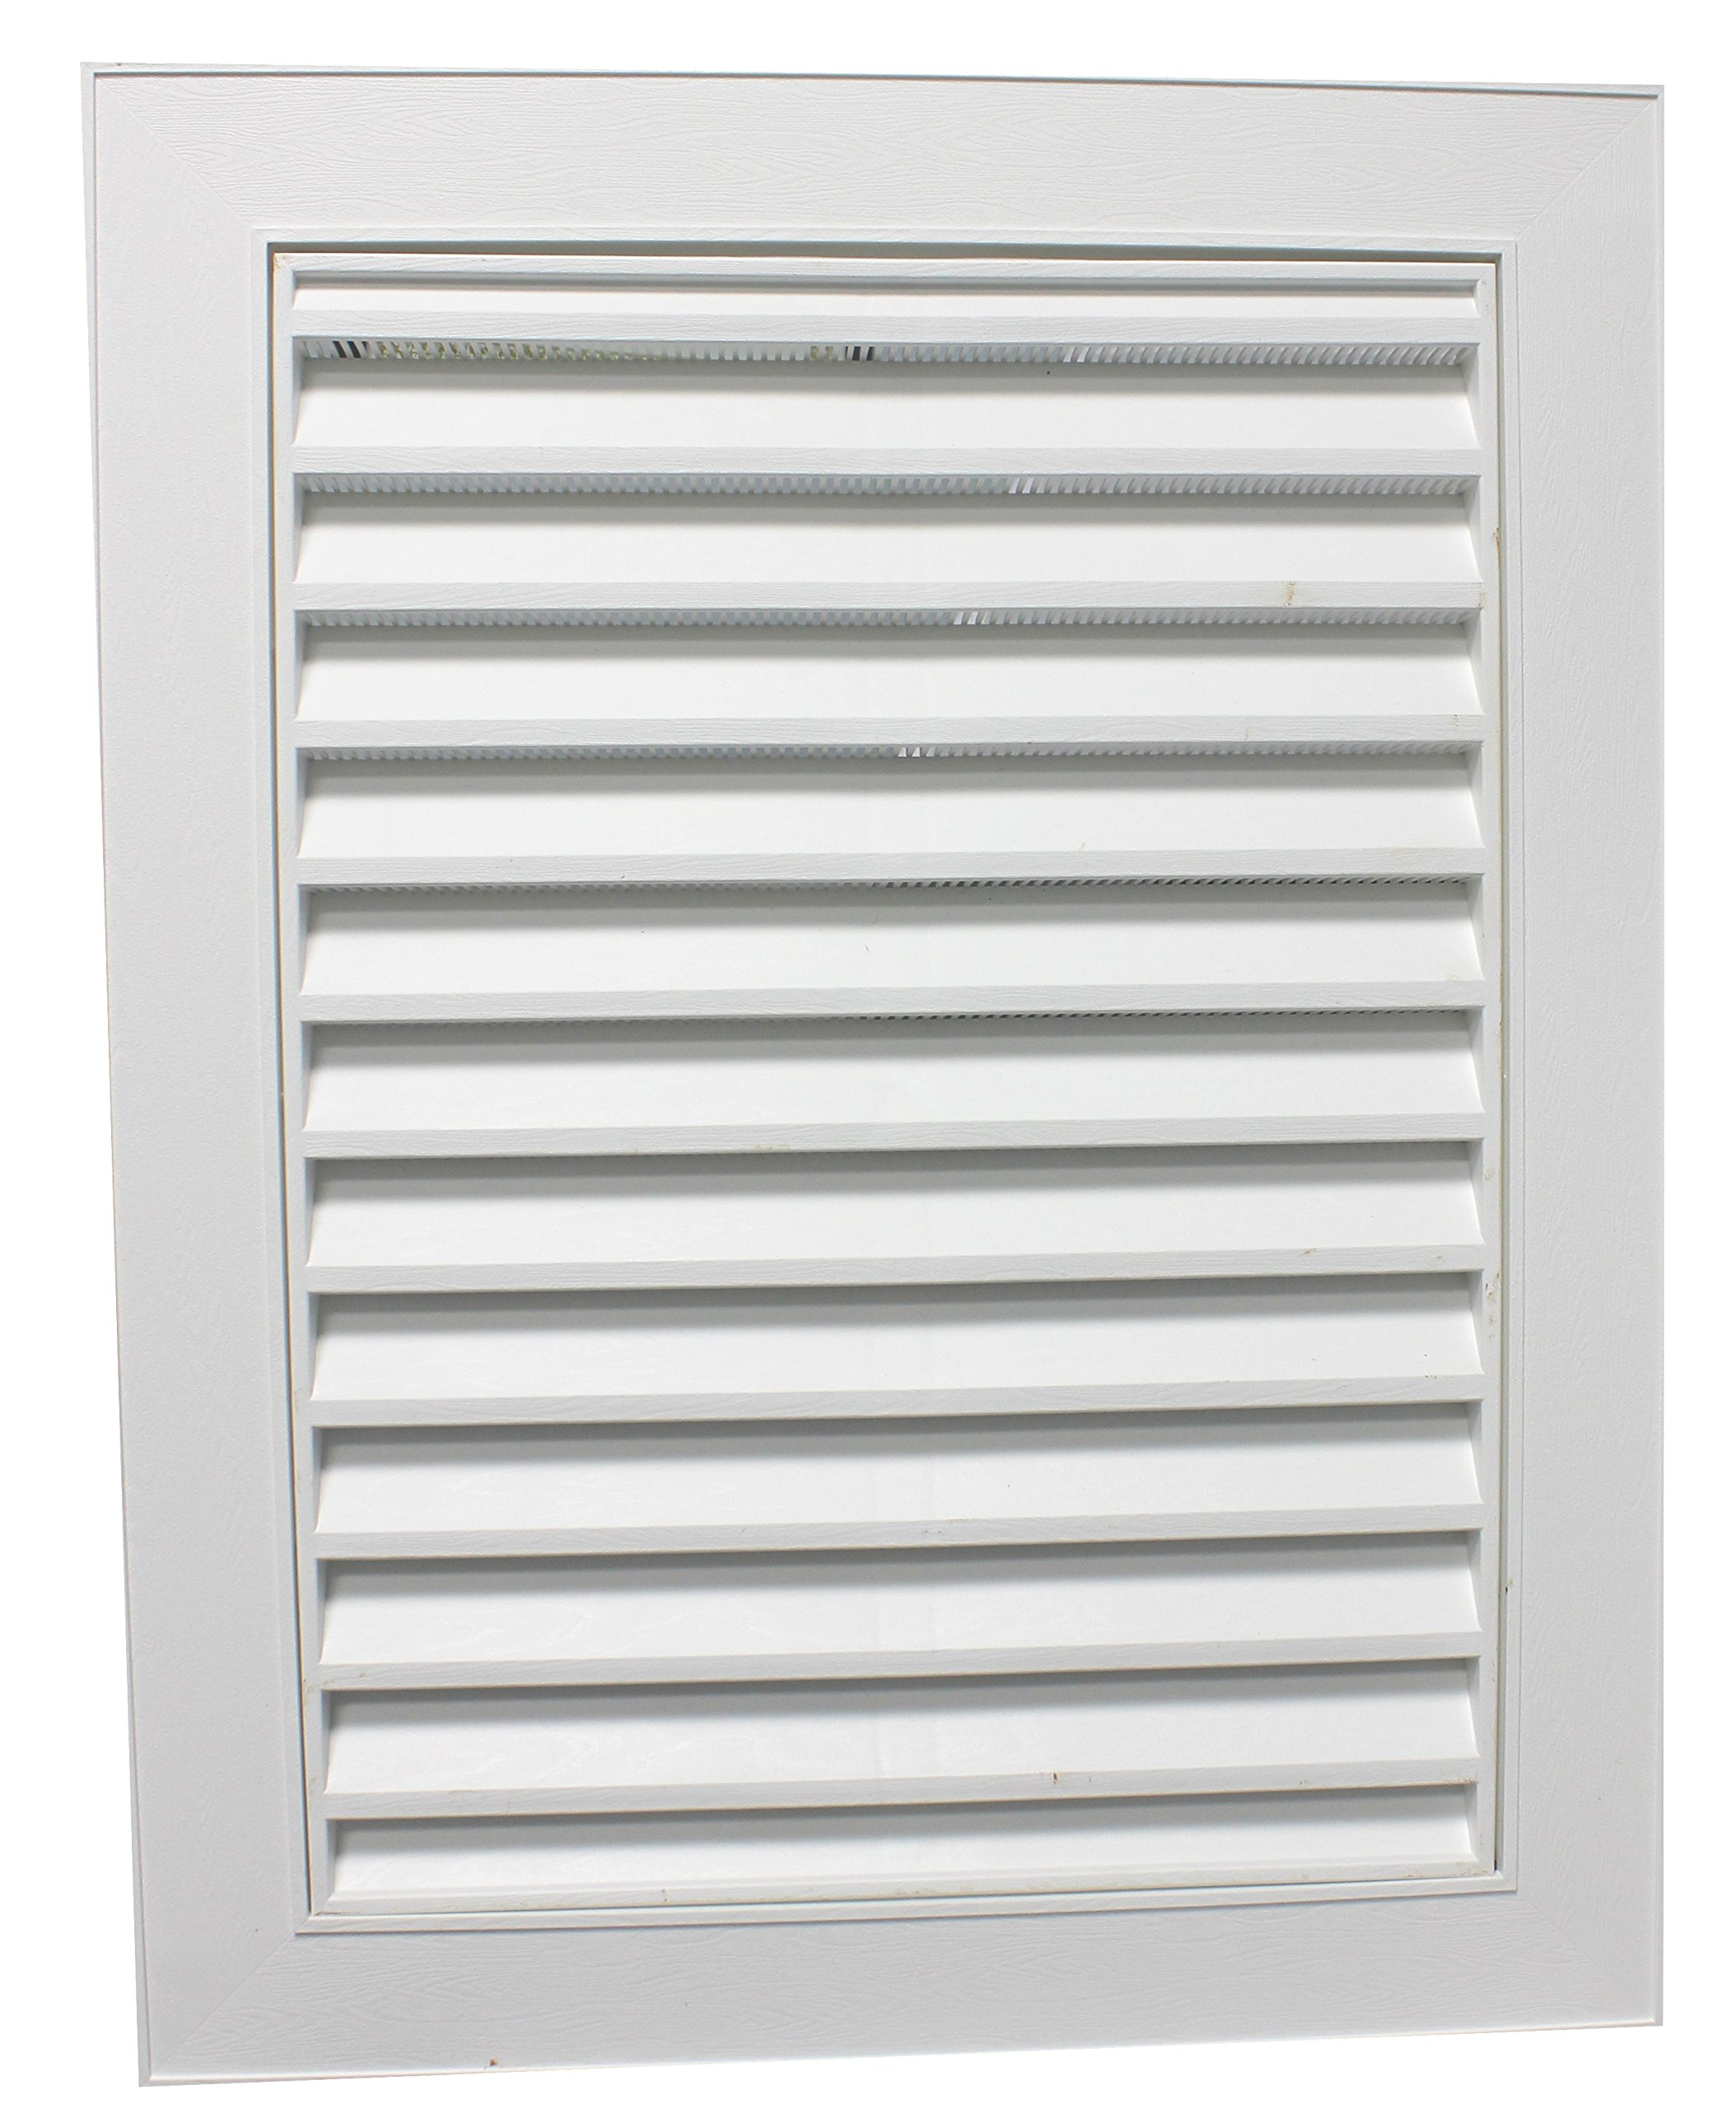 Duraflo 626120-00 Large Rectangular Gable Vent, 22 in W X 28 in H, 74 Sq-in, Polypropylene, 22'' x 28'', White by Duraflo